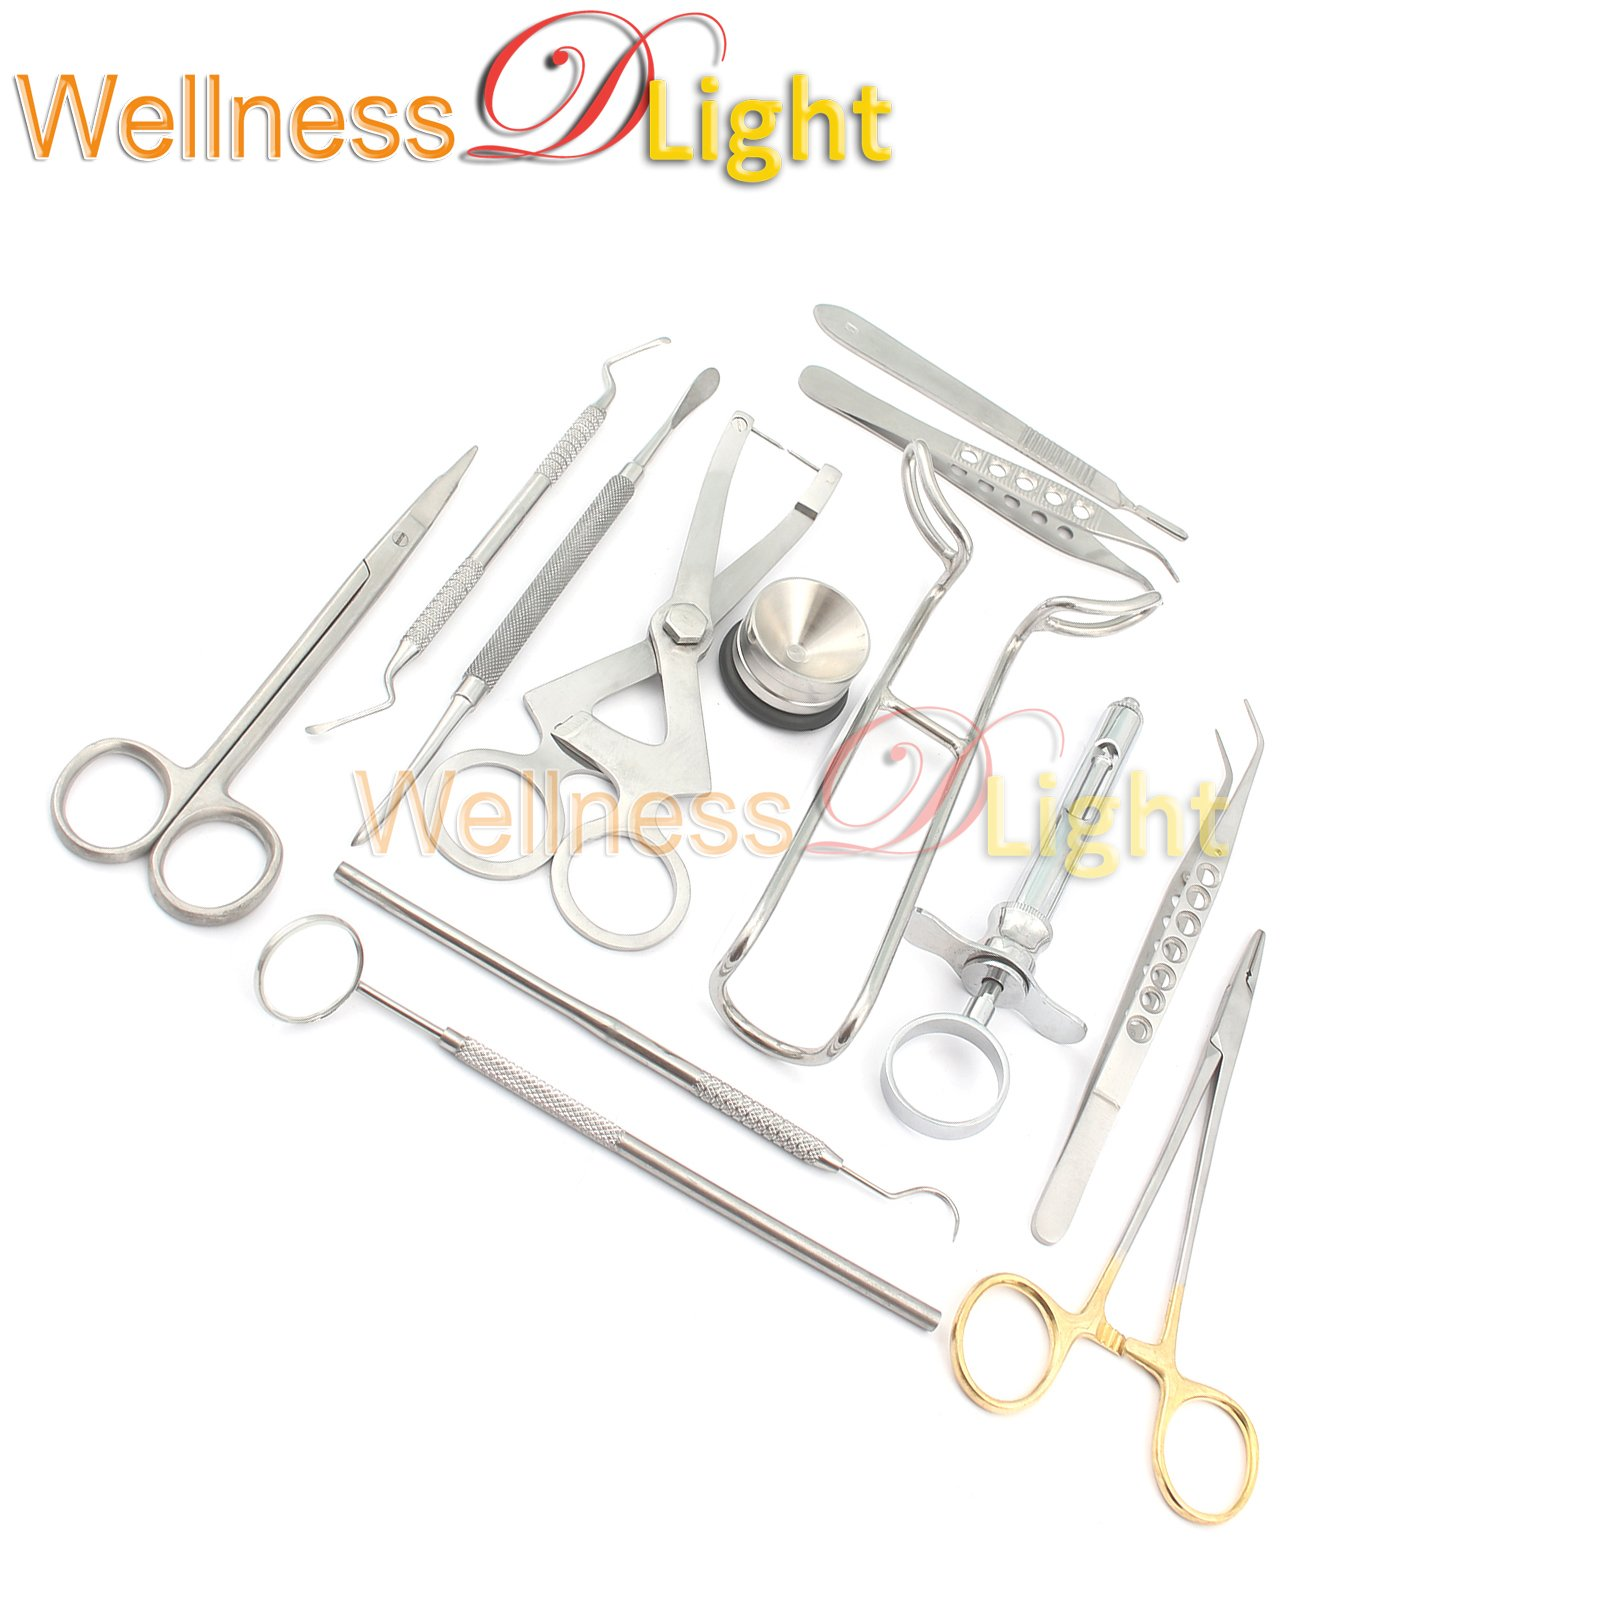 WDL PERIODONTAL PROSTHETIC KIT